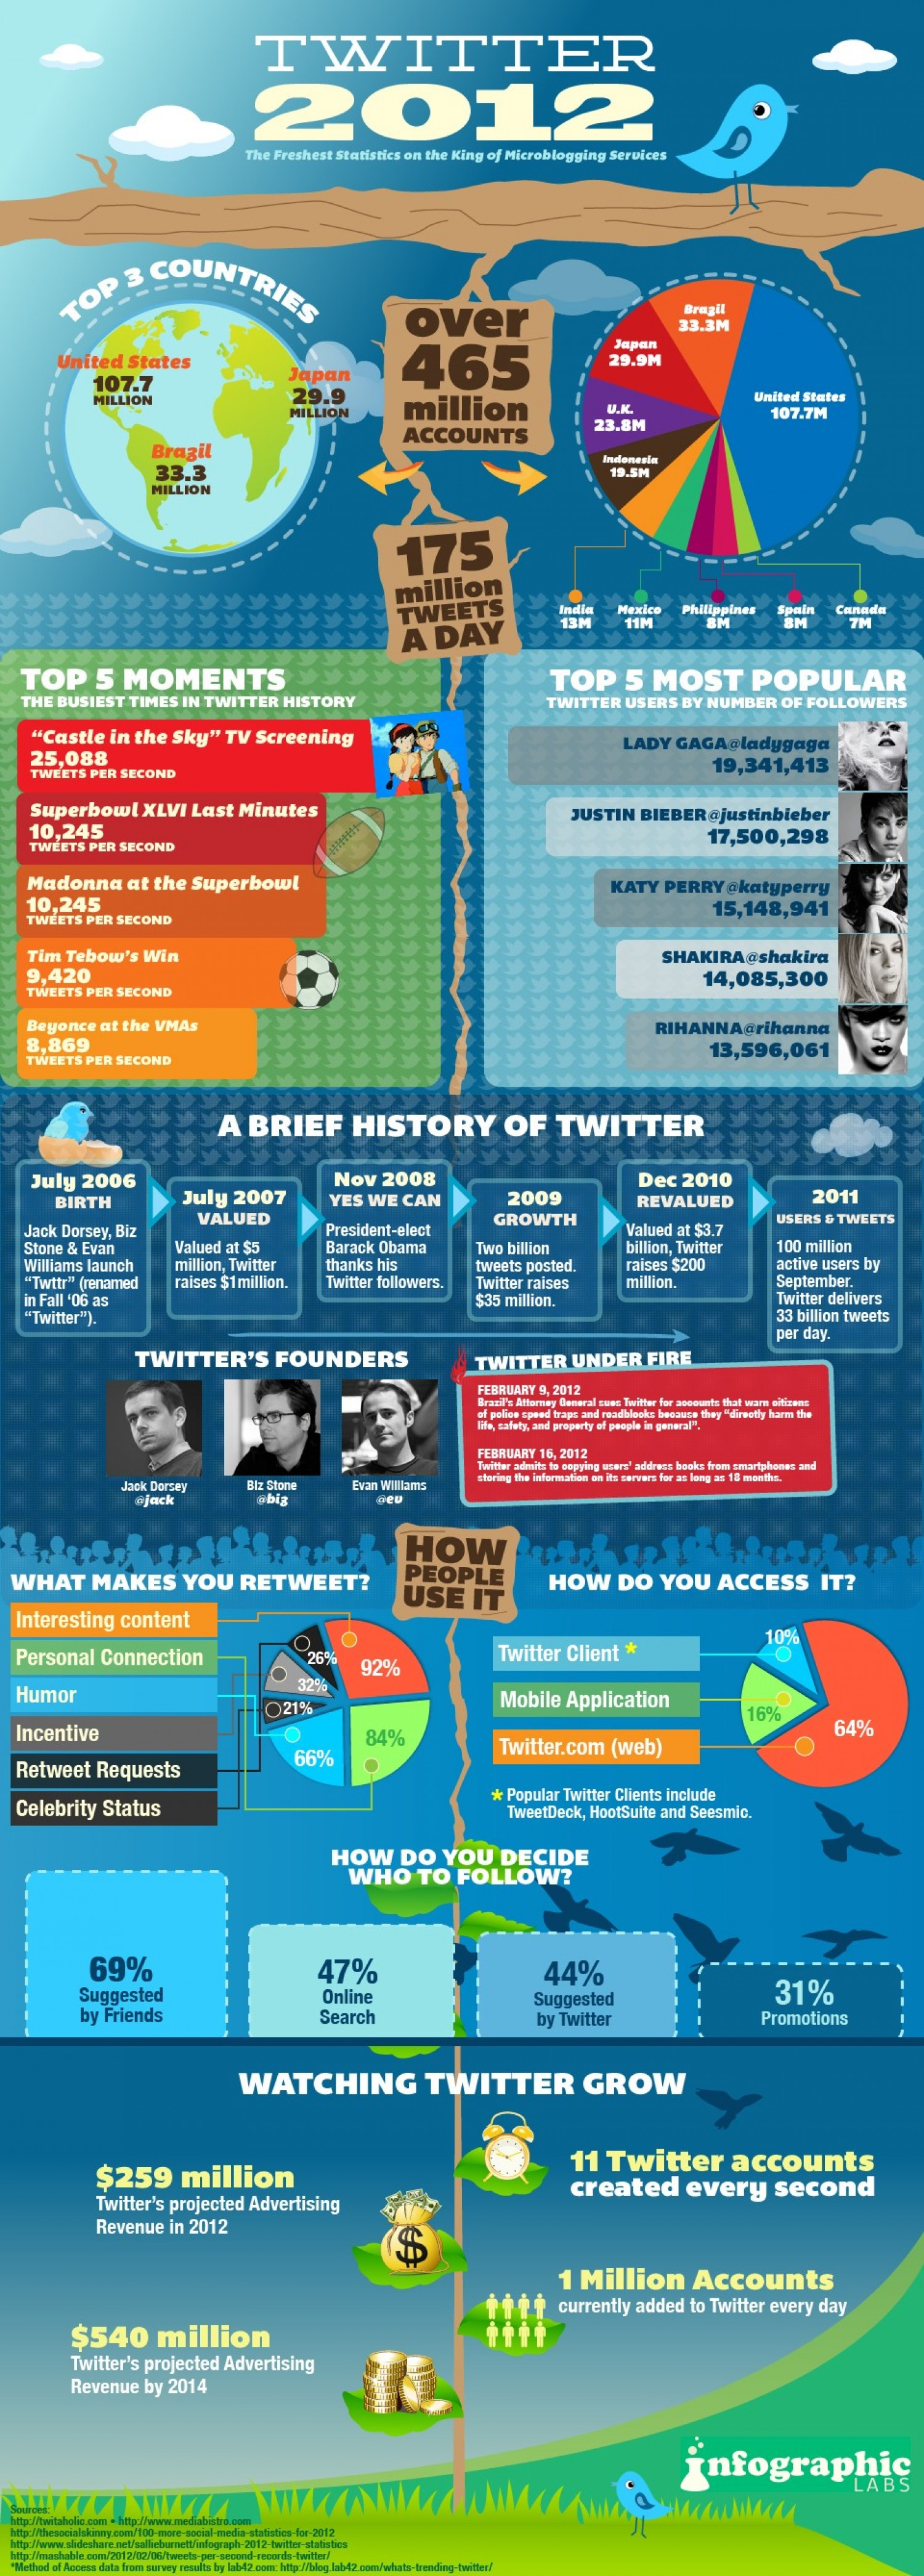 12. Just How Big Is Twitter In 2012